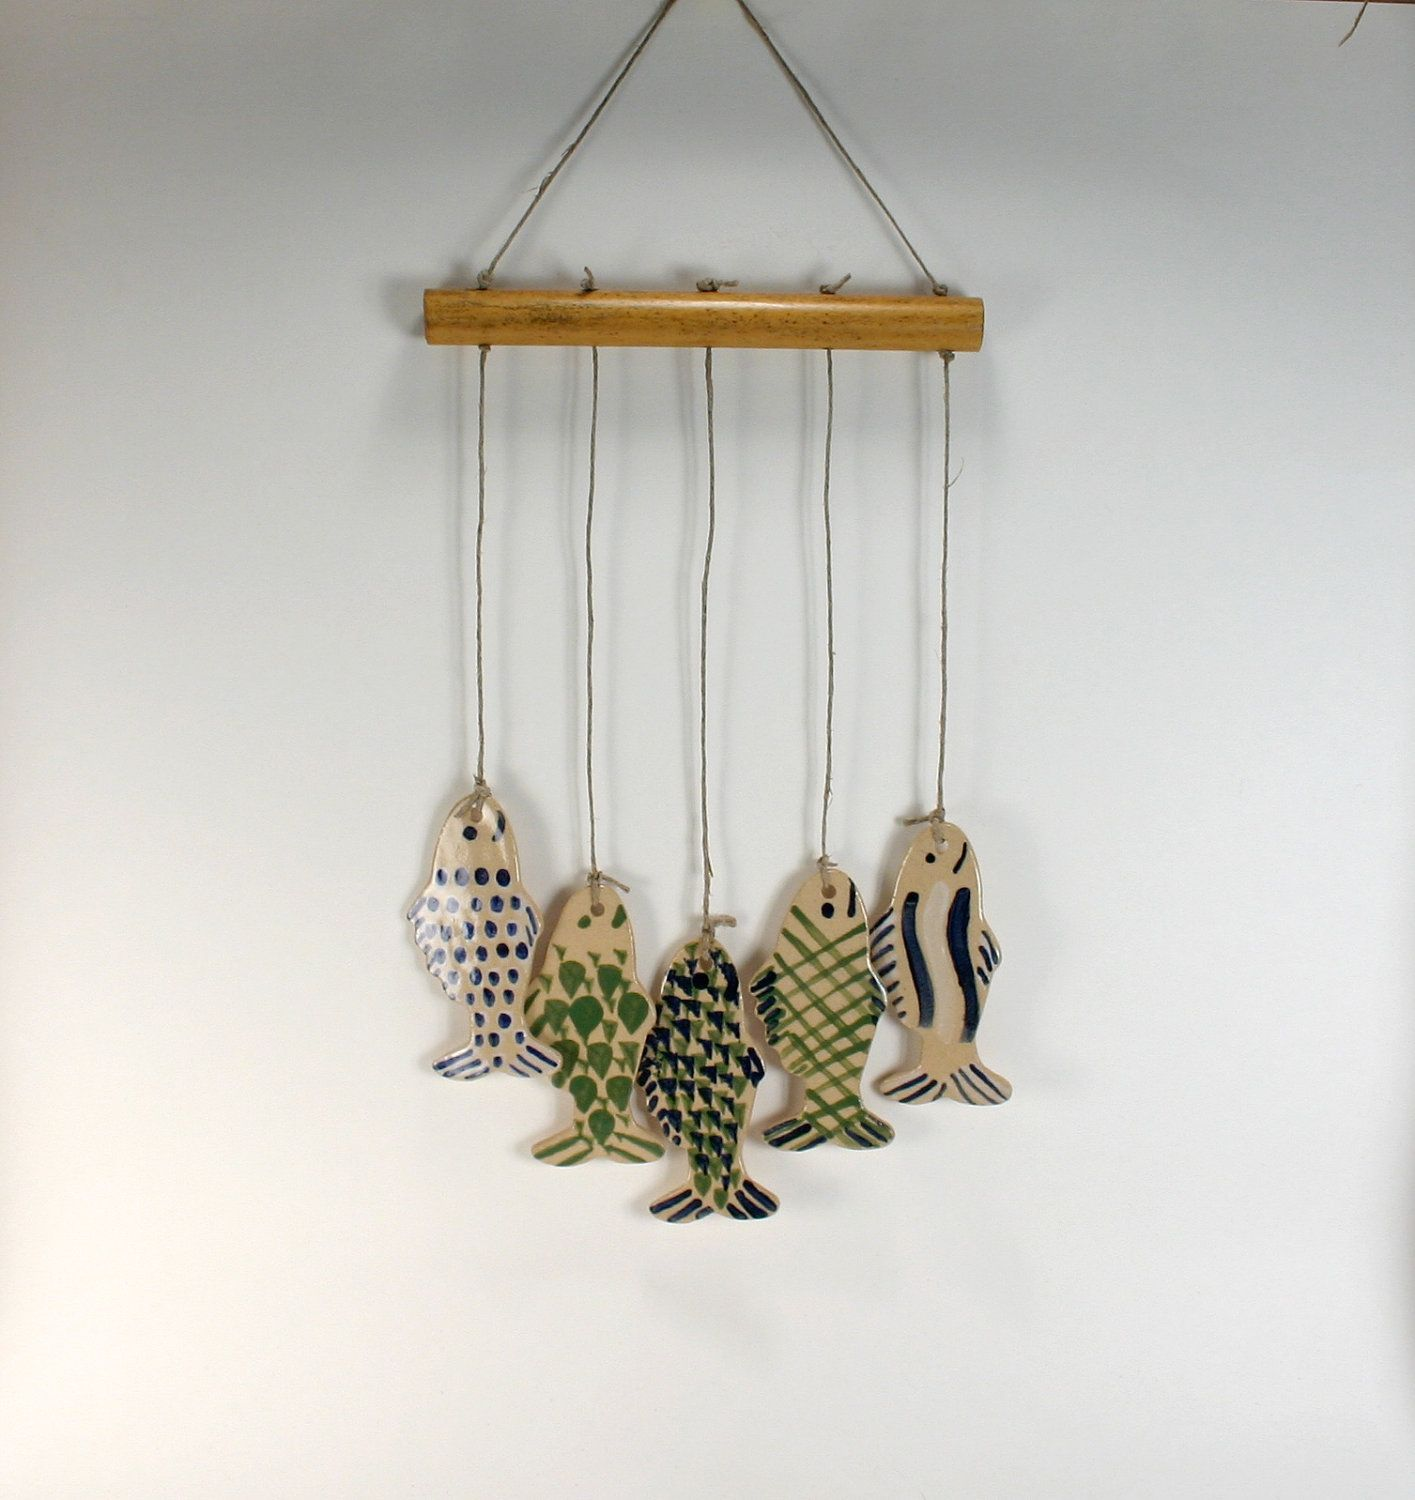 5 Blue And Green Fish Handmade Stoneware Wind Chimes Now I Know What To Do With All My Fish Wind Chimes Pottery Techniques Ceramic Fish